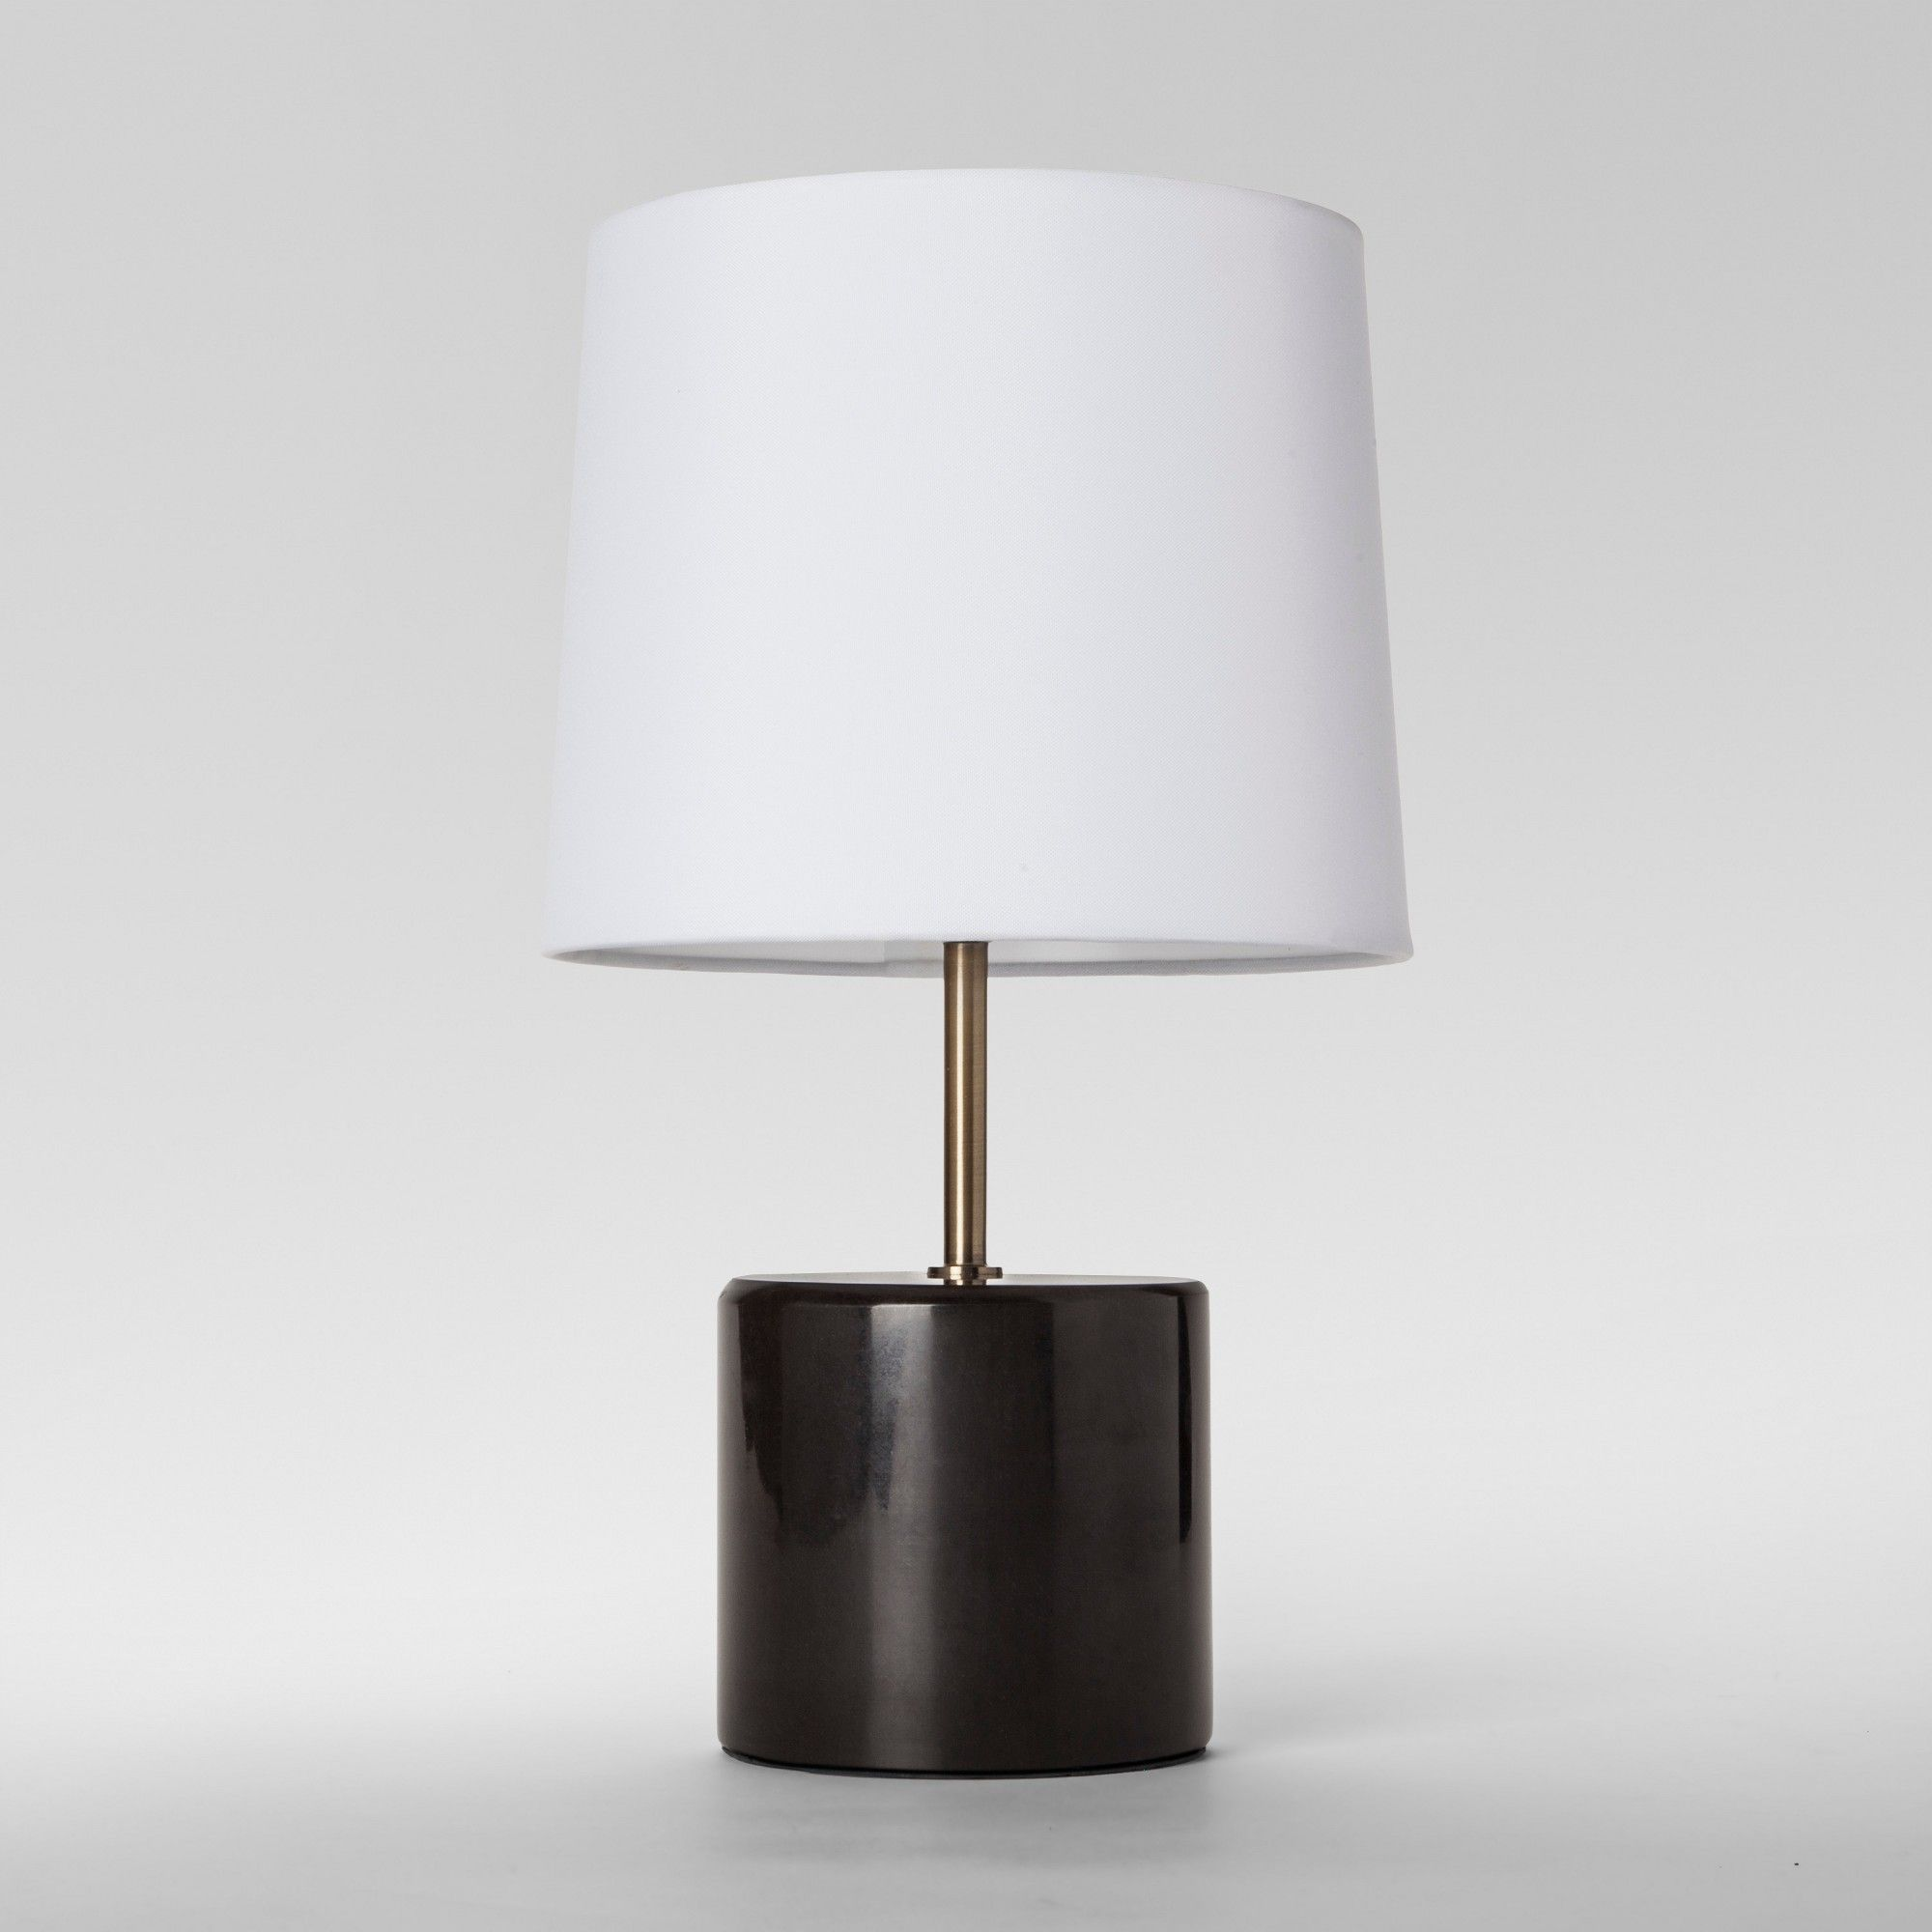 modern marble accent table lamp black includes energy efficient lamps light bulb project yard furniture nesting tables toronto tablette prix antique brass coffee white oval pier